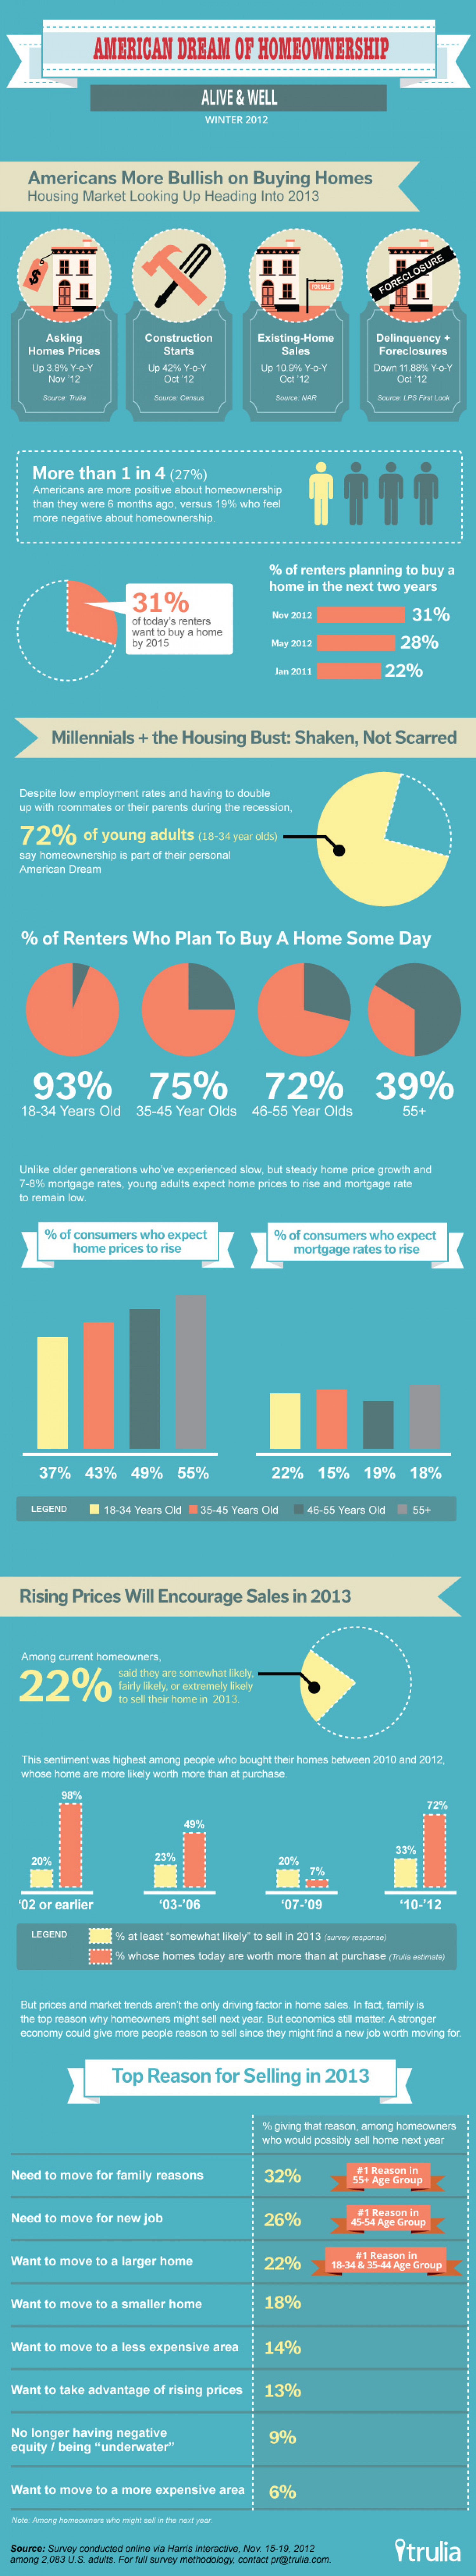 American Dream of Homeownership Infographic